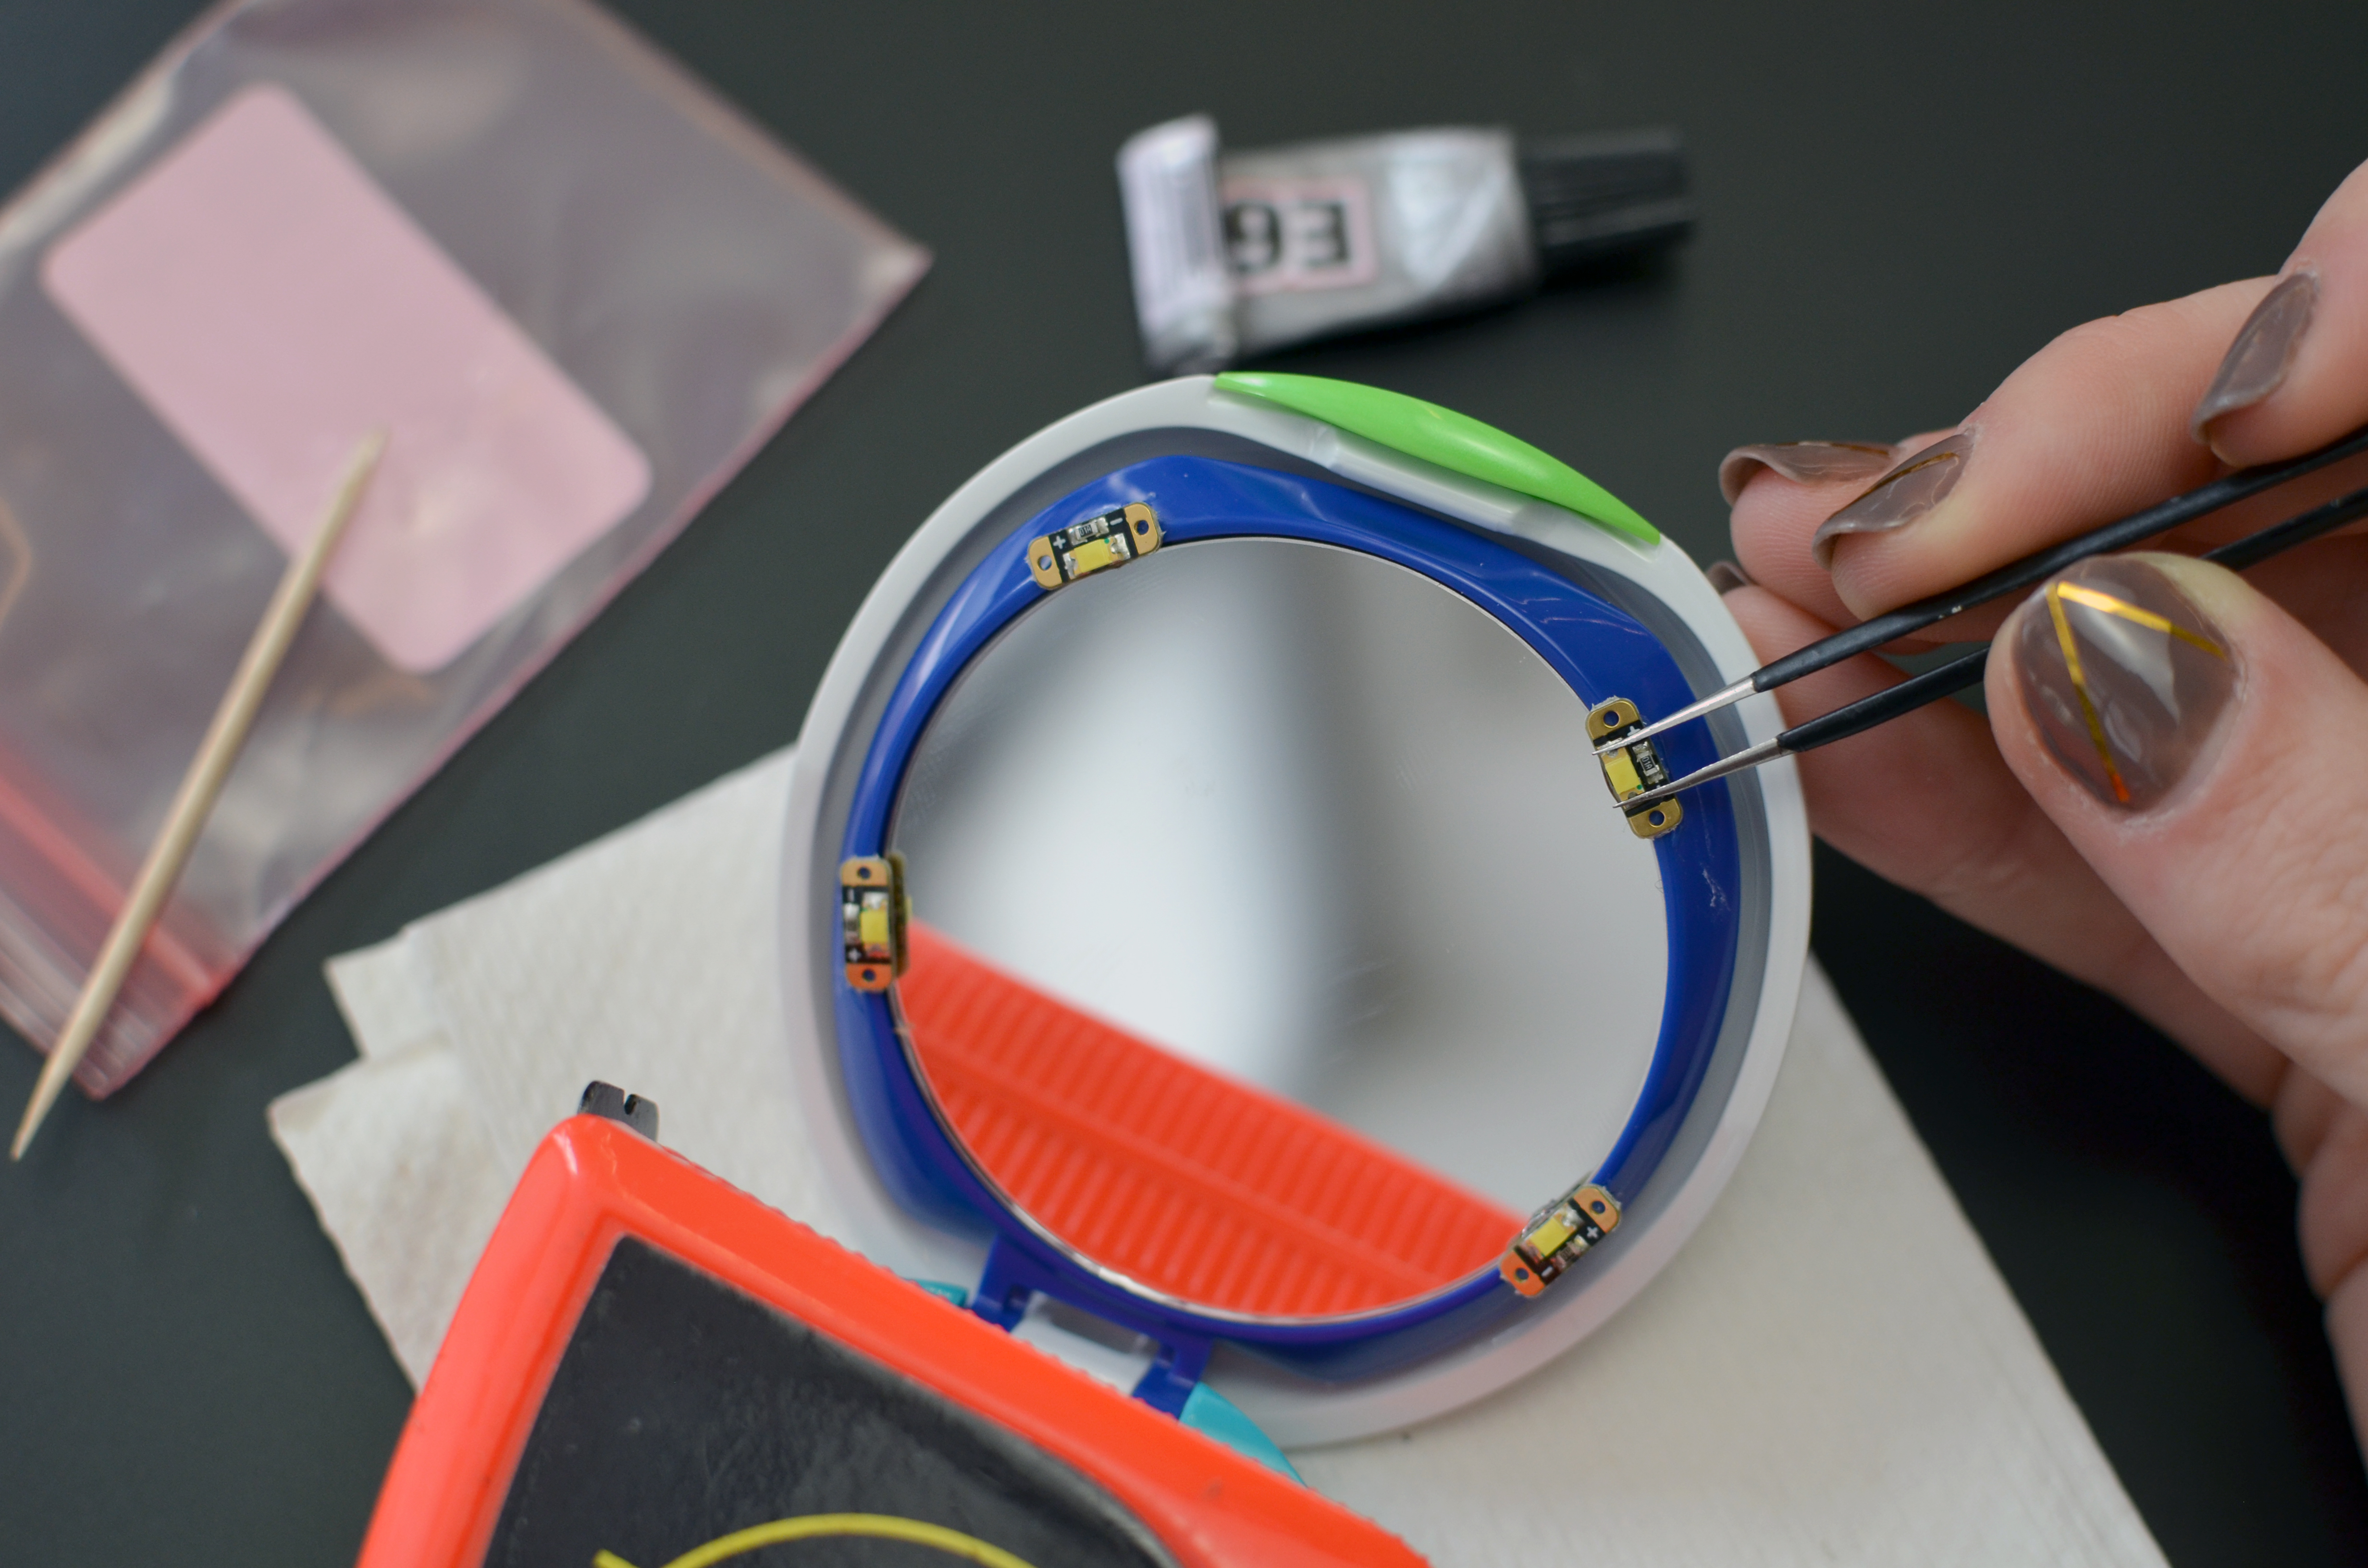 projects_DIY-LED-makeup-compact-mirror-05.jpg